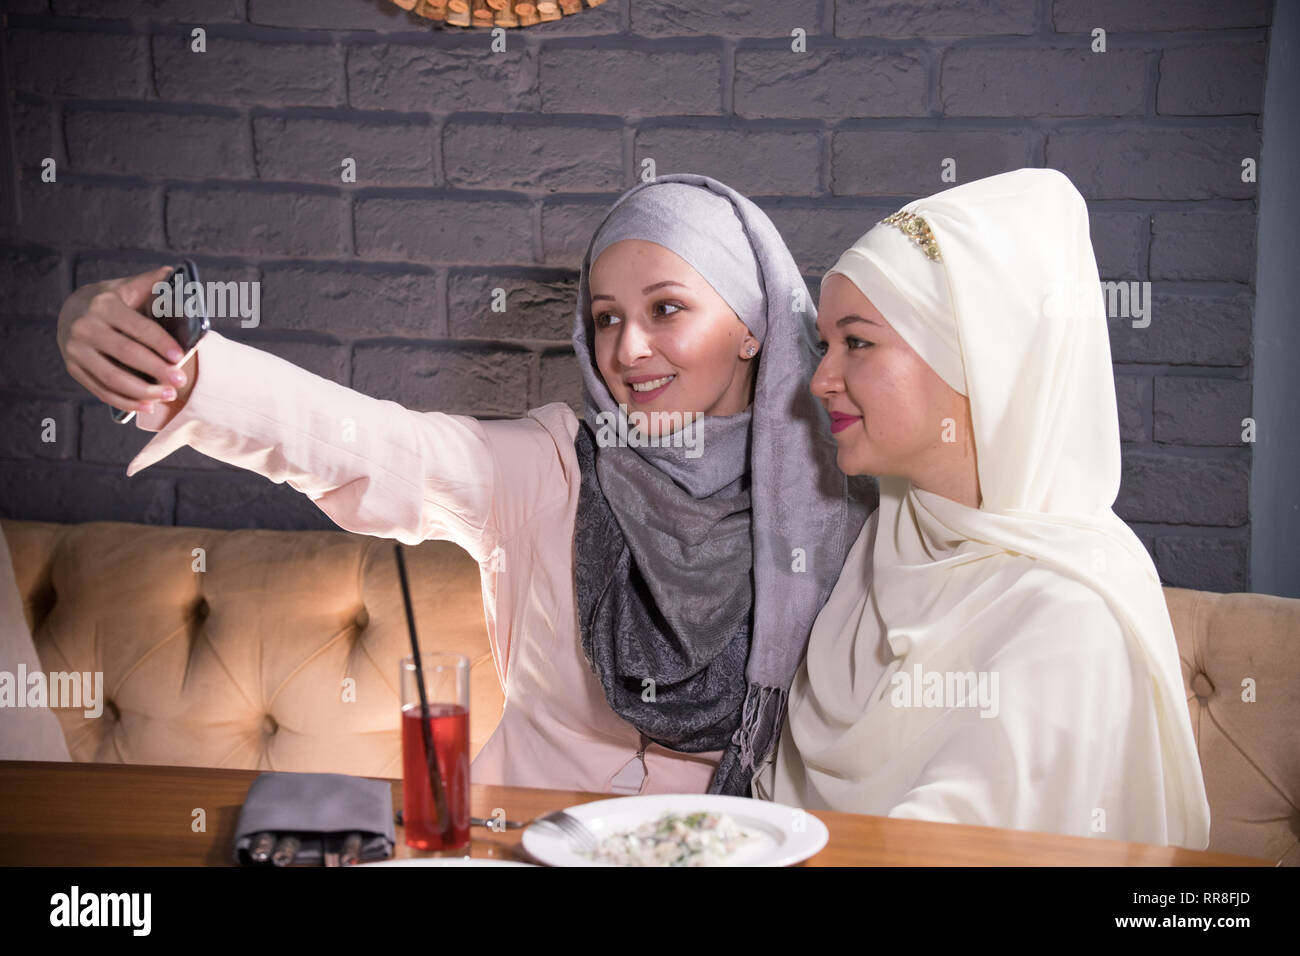 Girls in hijabs are photographed in a cafe - Stock Image